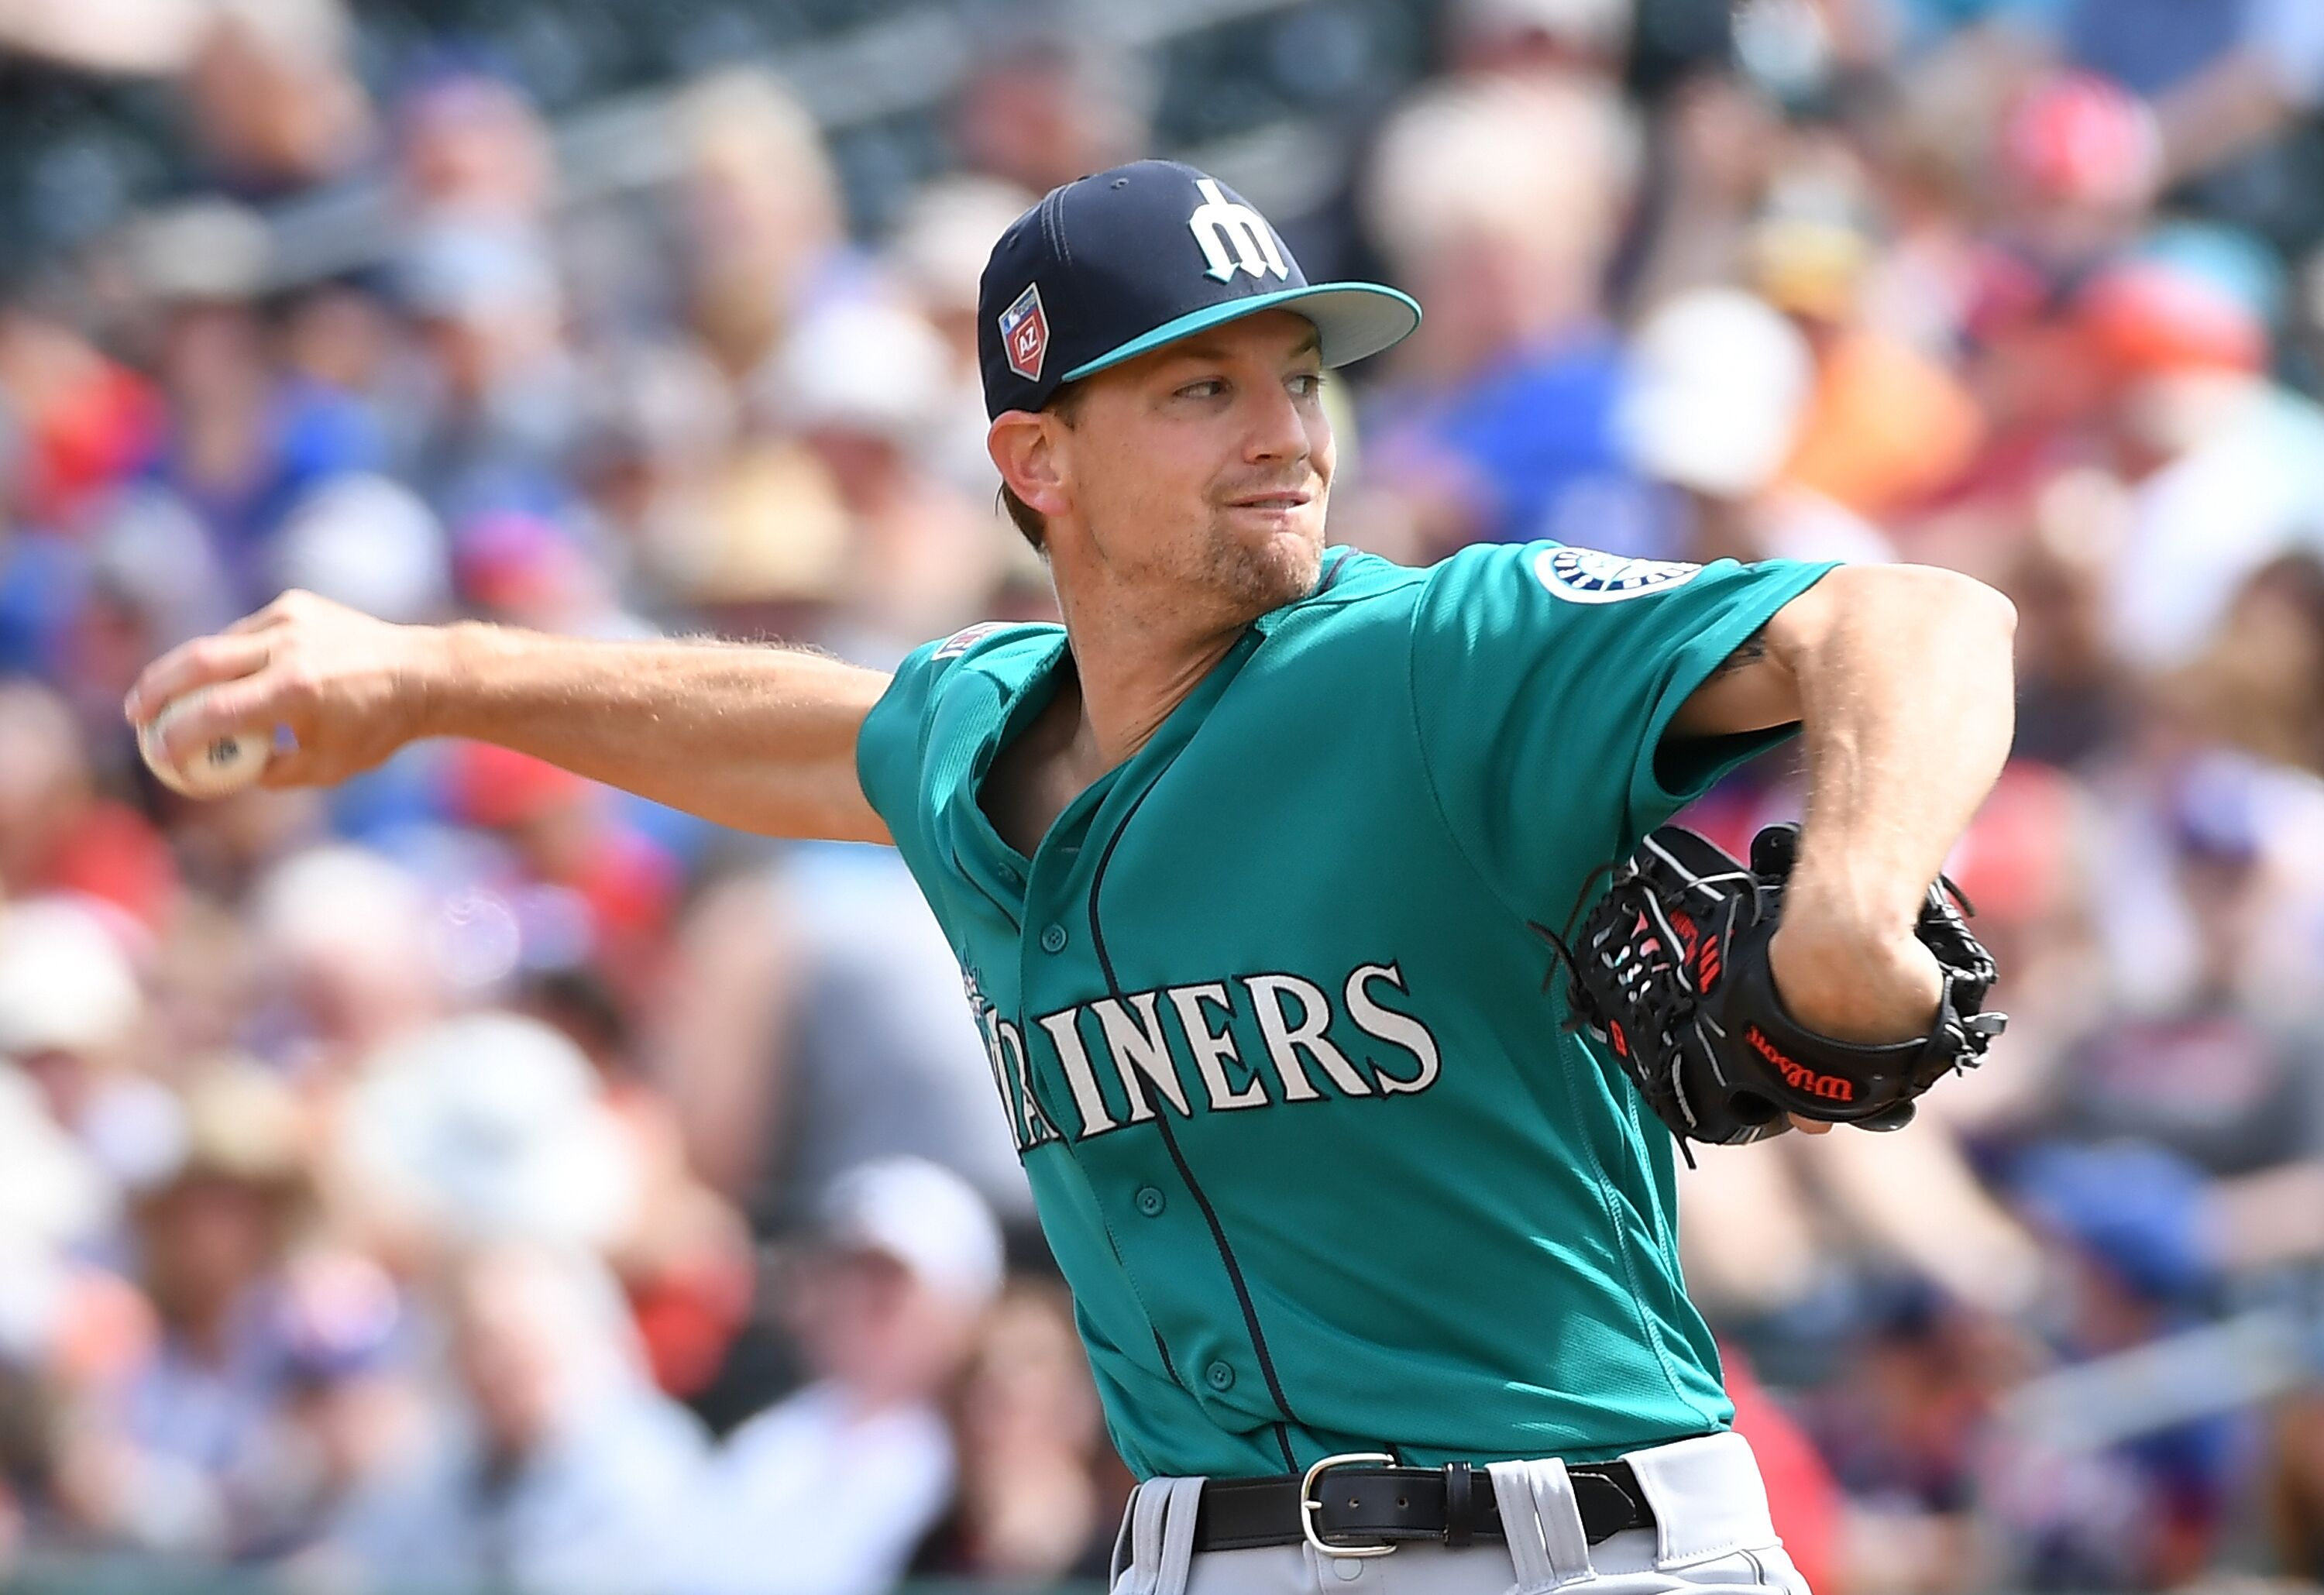 Seattle Mariners Not Getting Gray, But Help in SP Trade Market